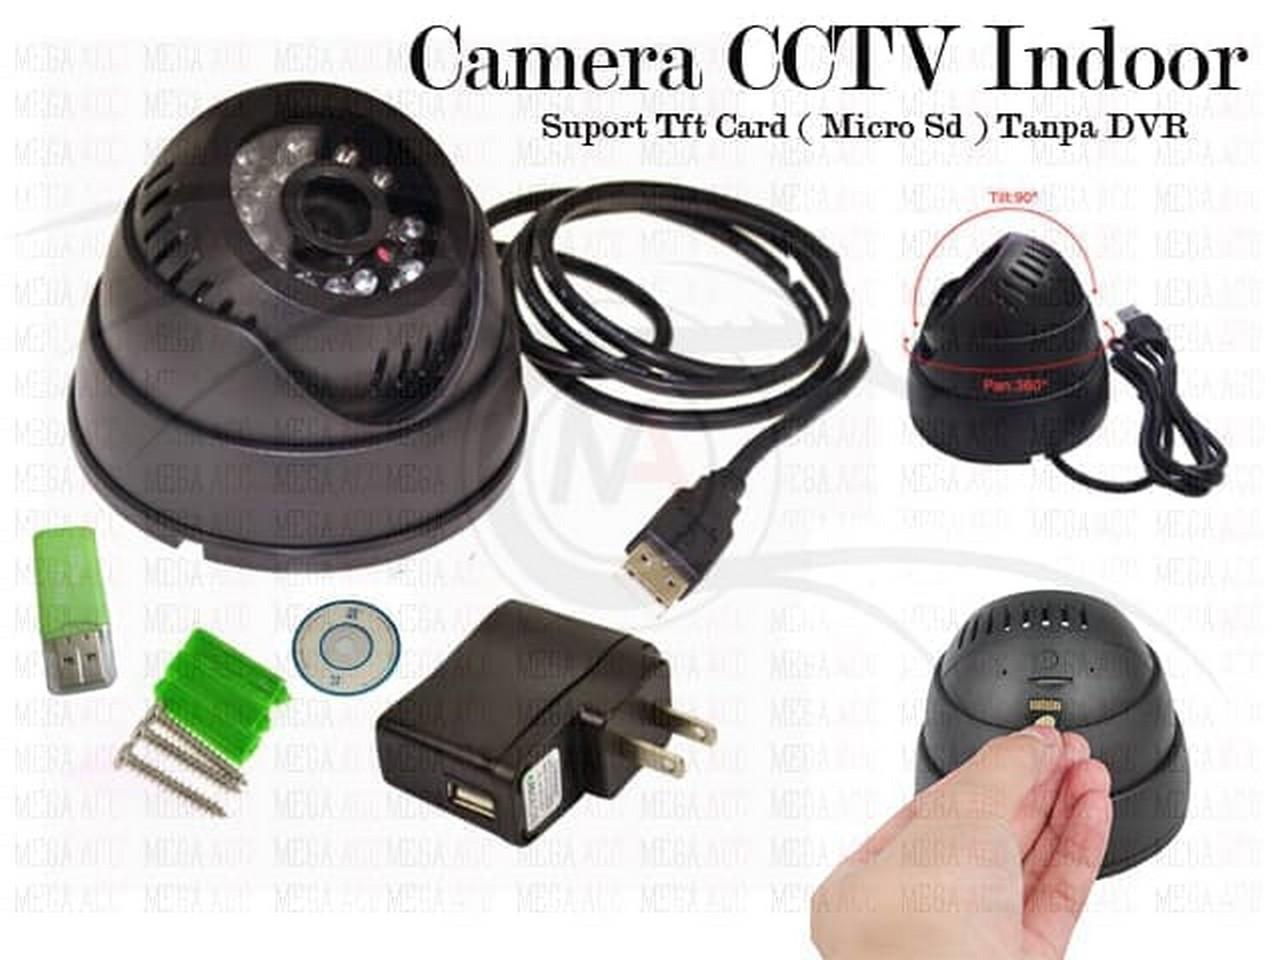 spy camera apk / spy camera num / spy camera wifi / spy camera android / spy camera os / spy camera terbaik / spy camera kancing / spy camera android apk / spy camera bandung / KAMERA CCTV MEMORY CARD / CCTV memory card DISKON MURAH!!!